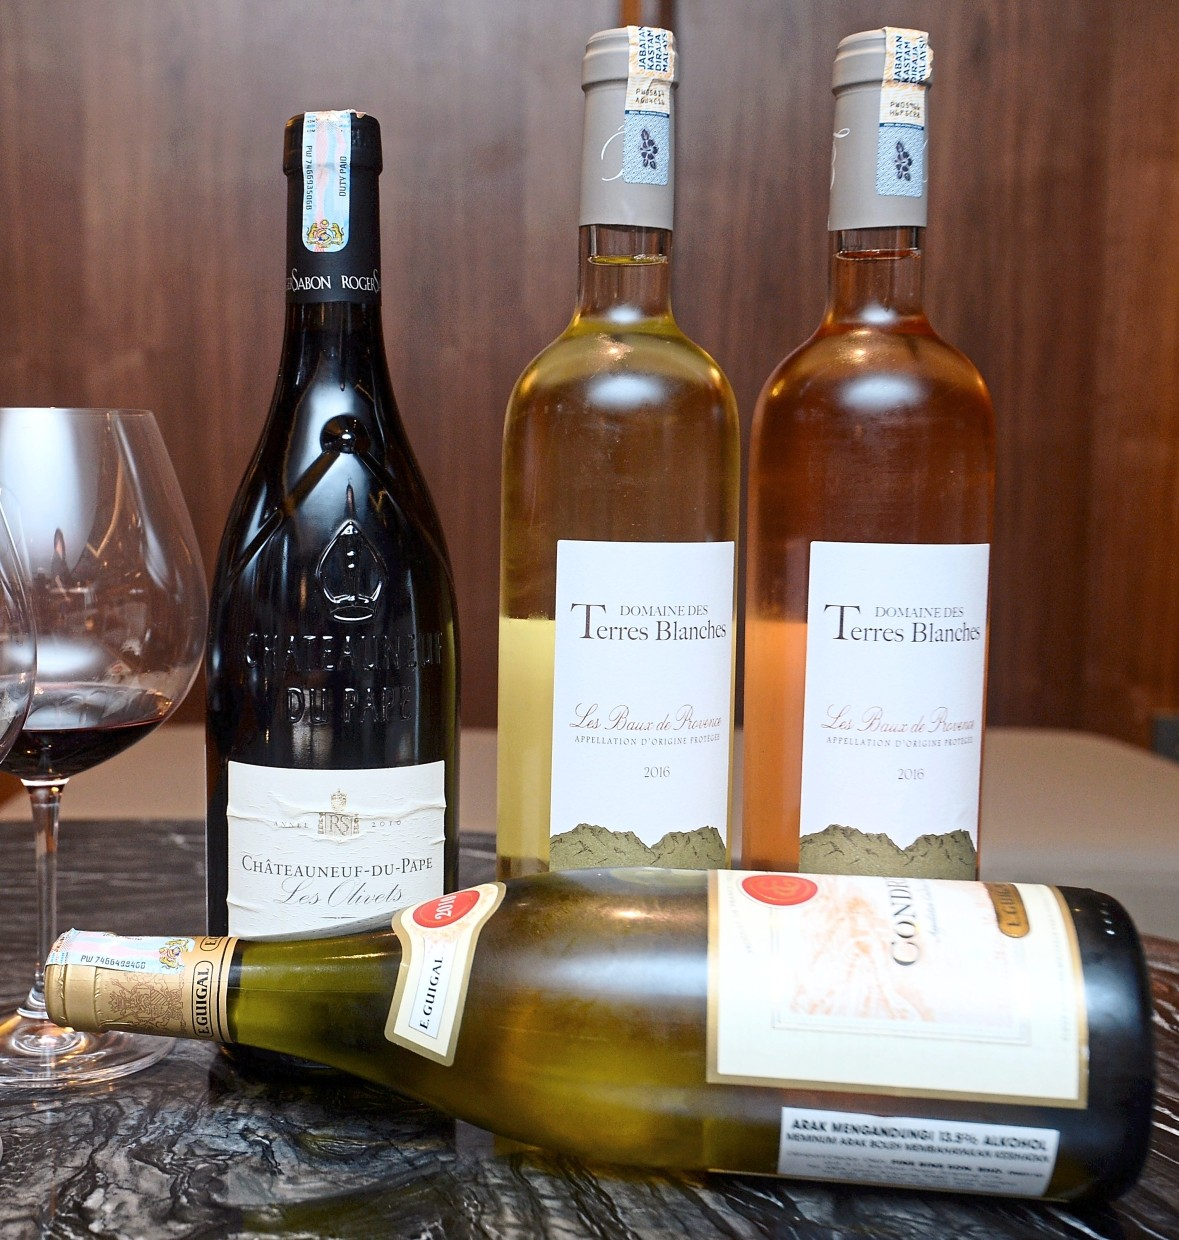 The four wines served during the Rhone and Provence Specialty Food Festival.are Condrieu 2010, Chateauneuf-du-Pape 'Les Olivets' 2010, Domaine Des Terres Blanches Rose 2016 and Domaine Des Terres Blanches Blanc 2016.